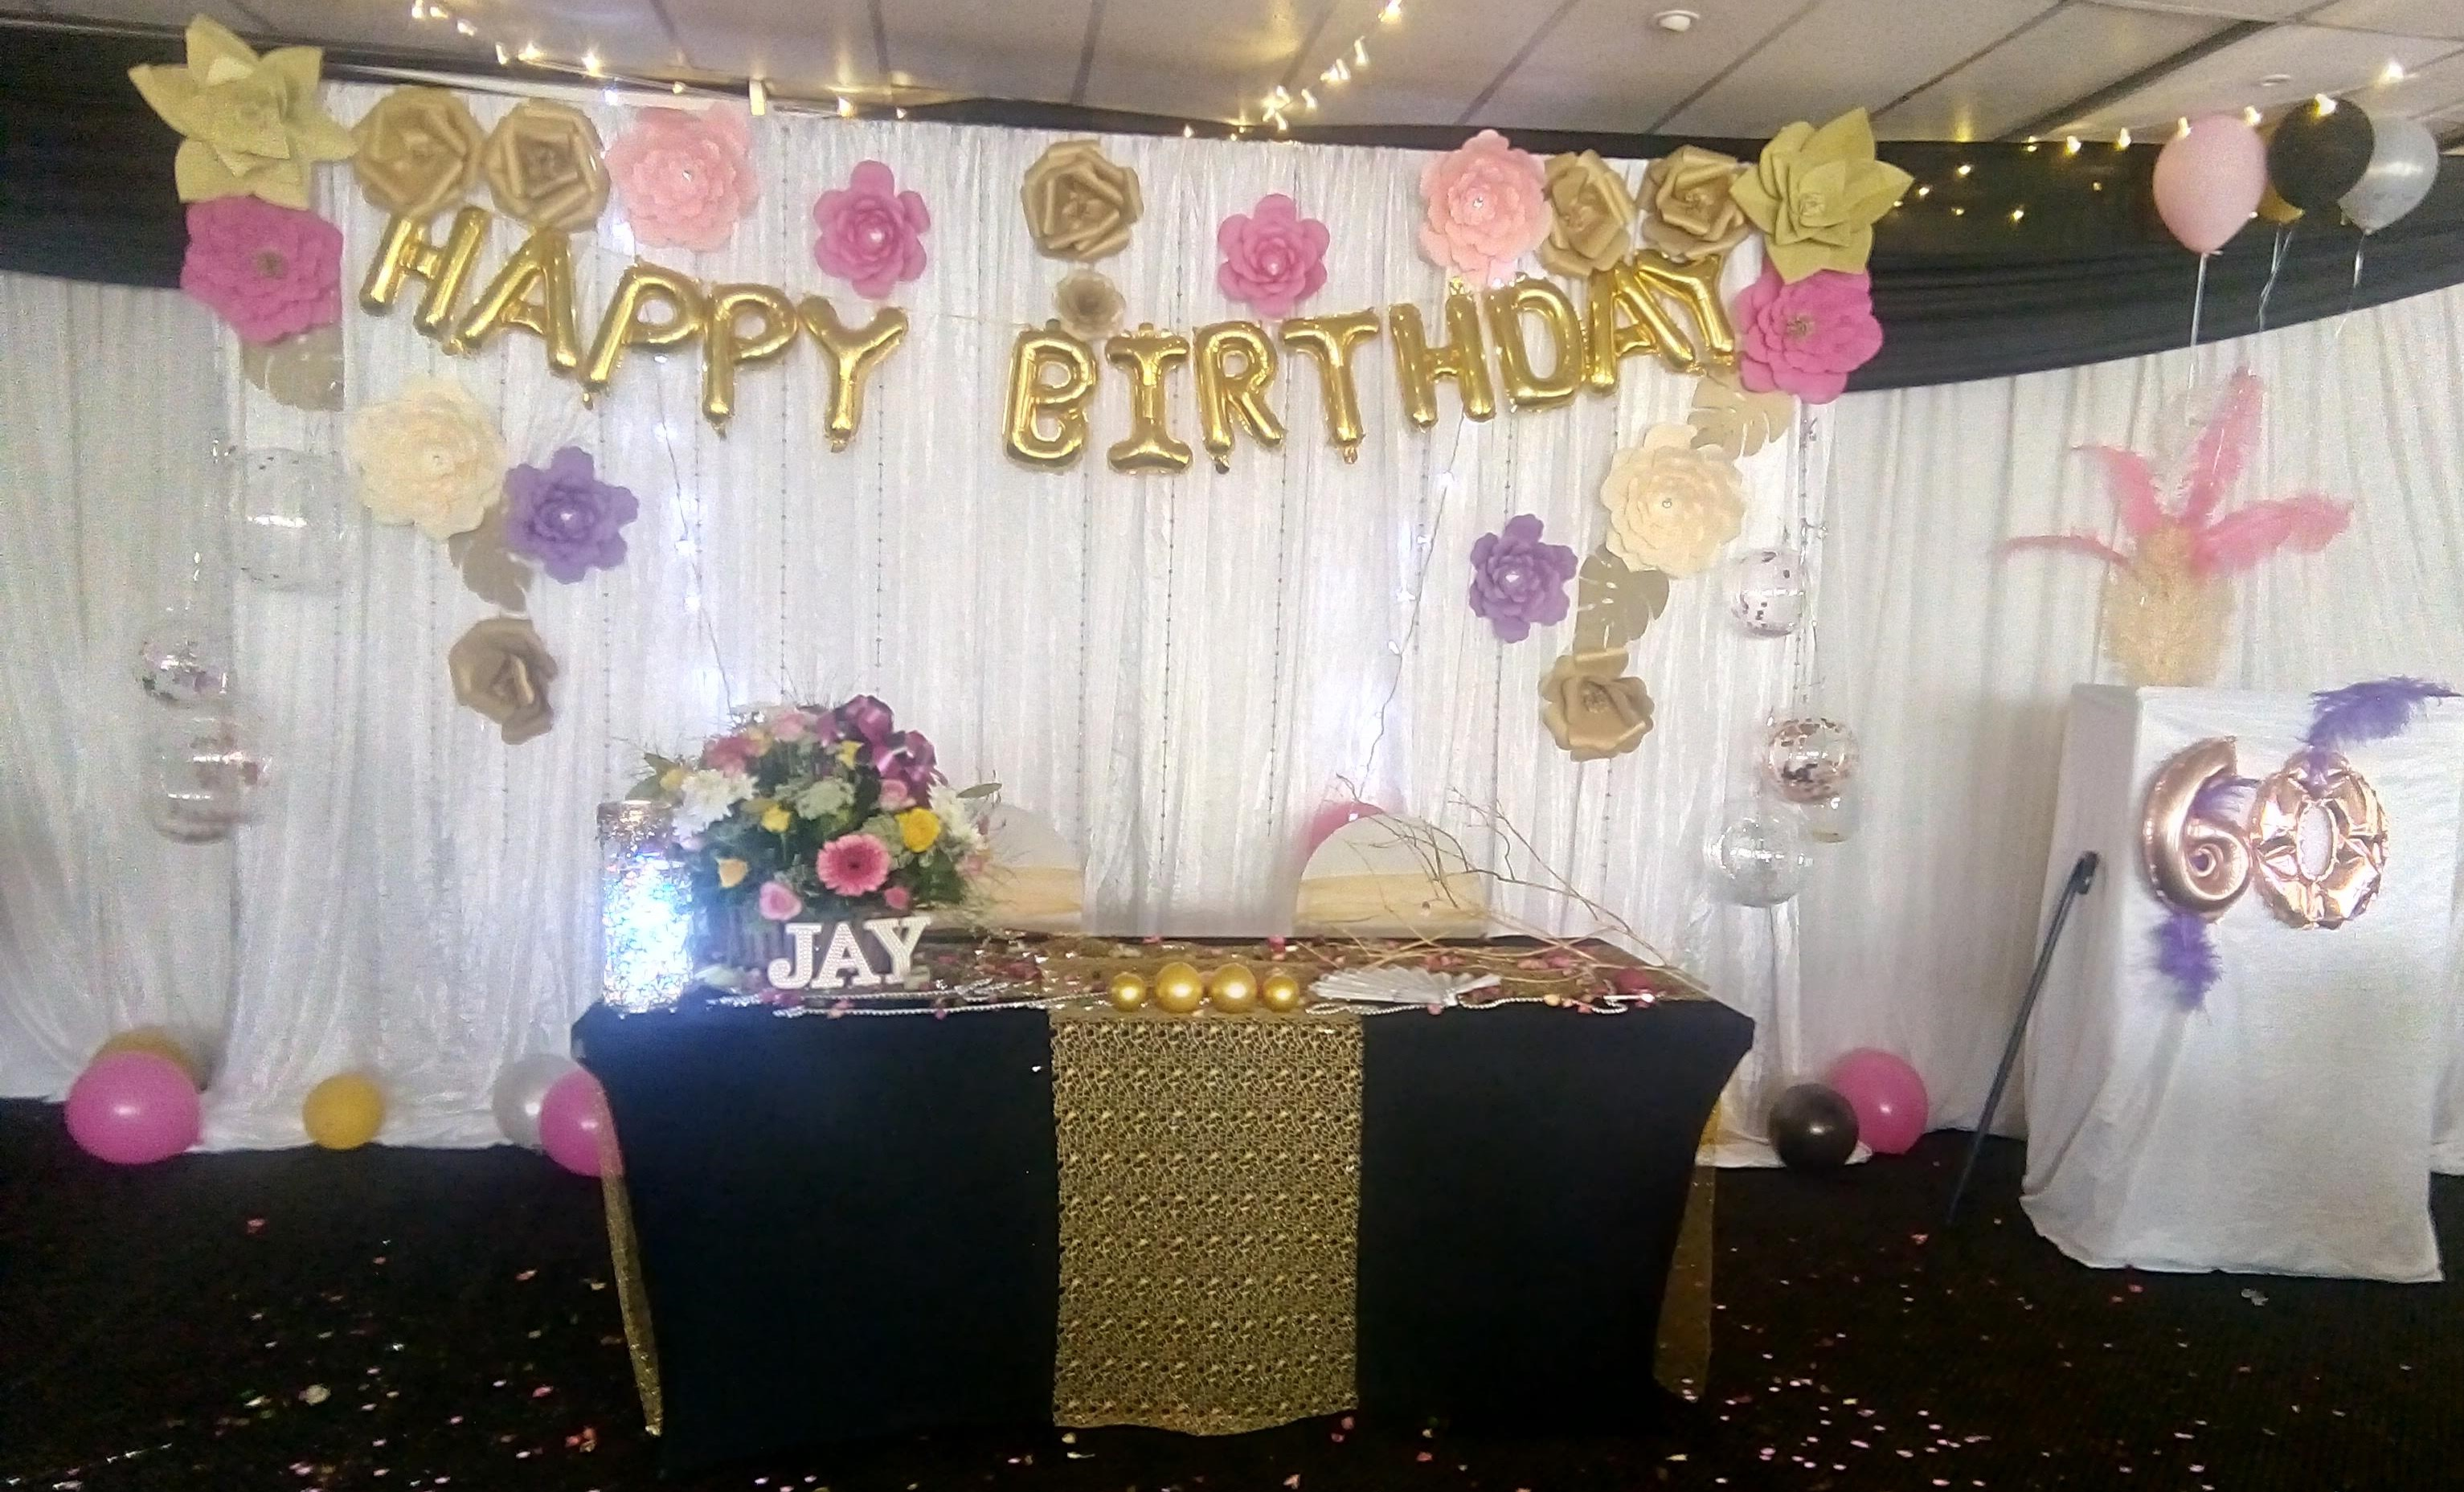 jay BIrtjhday.jpg